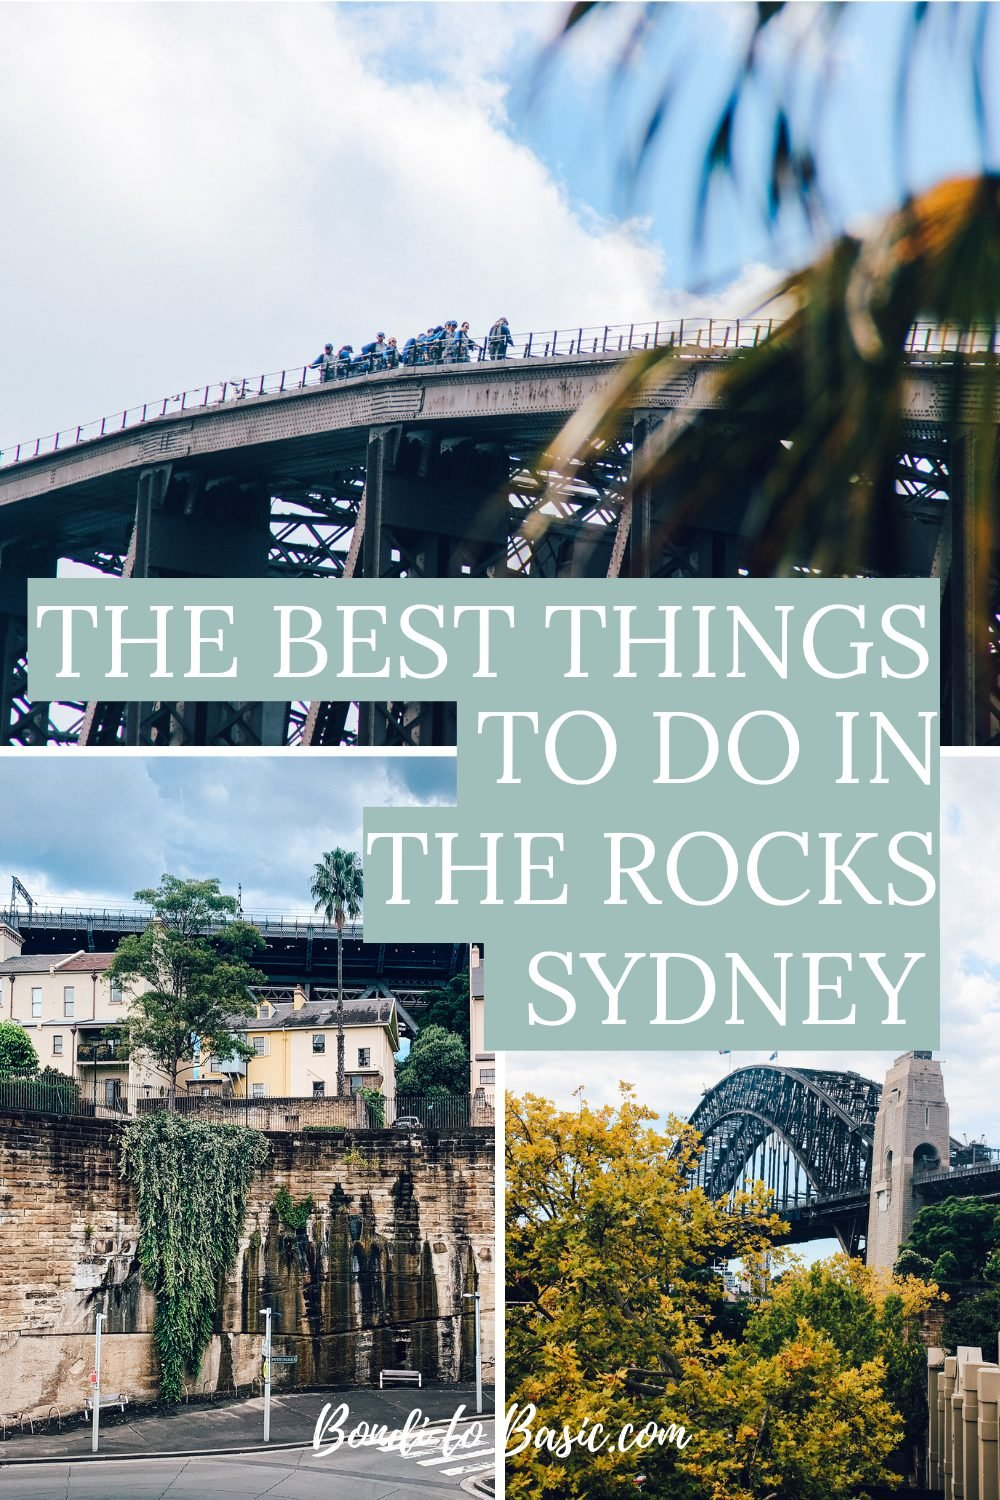 Things to do in the rocks sydney